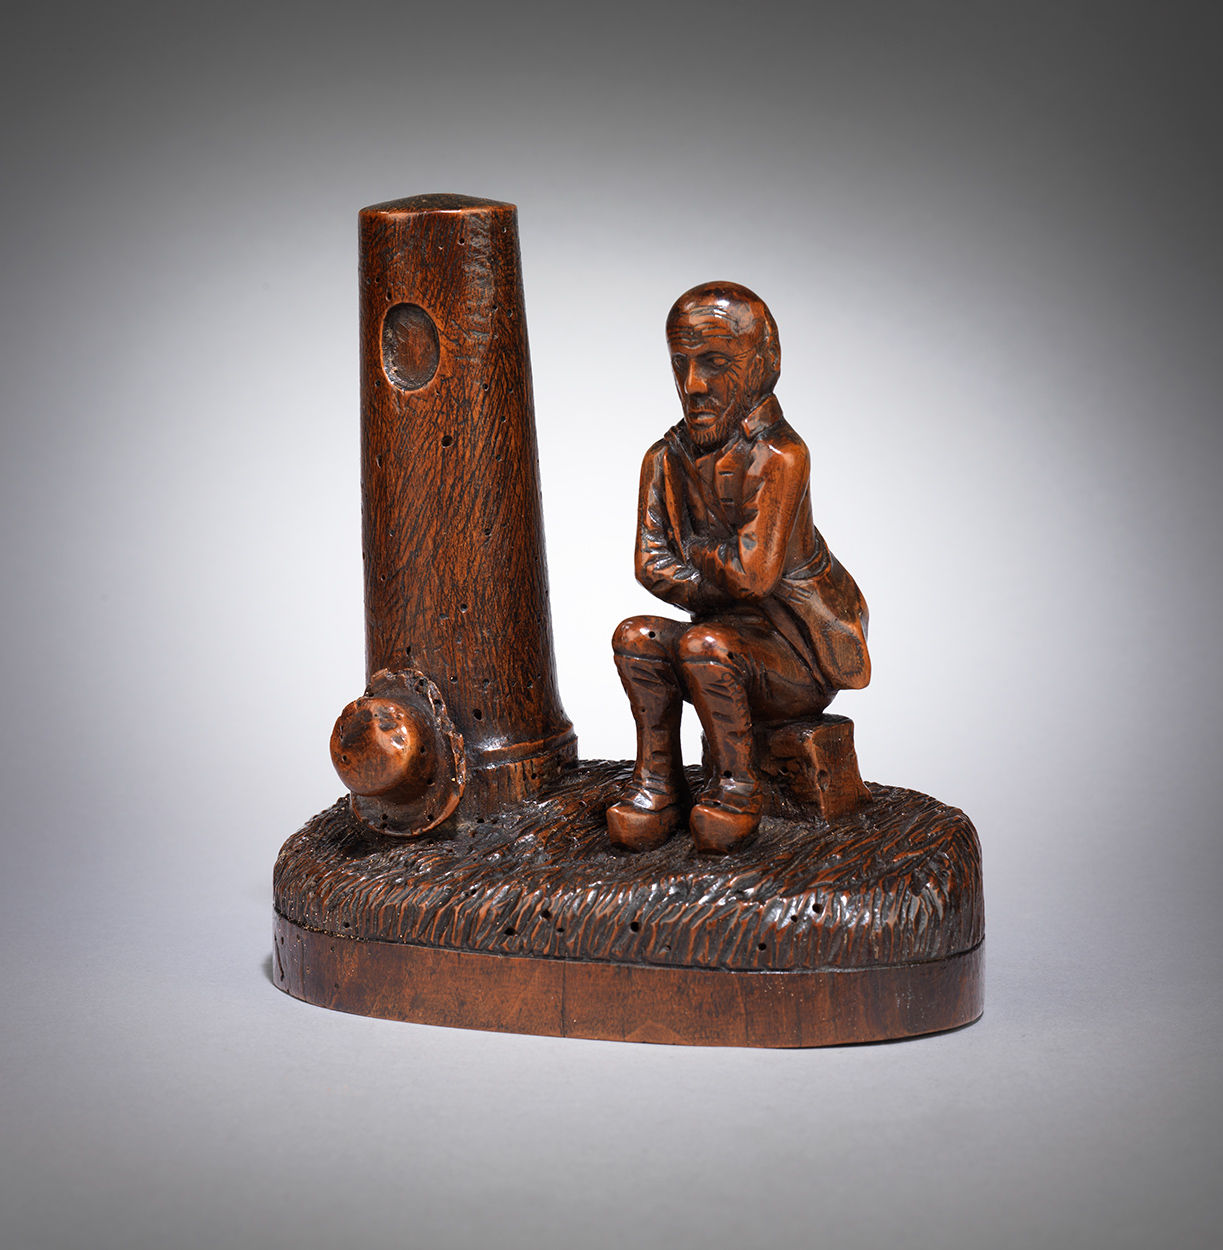 Naive Folk Art Carving of a Man Seated Beside a Tower